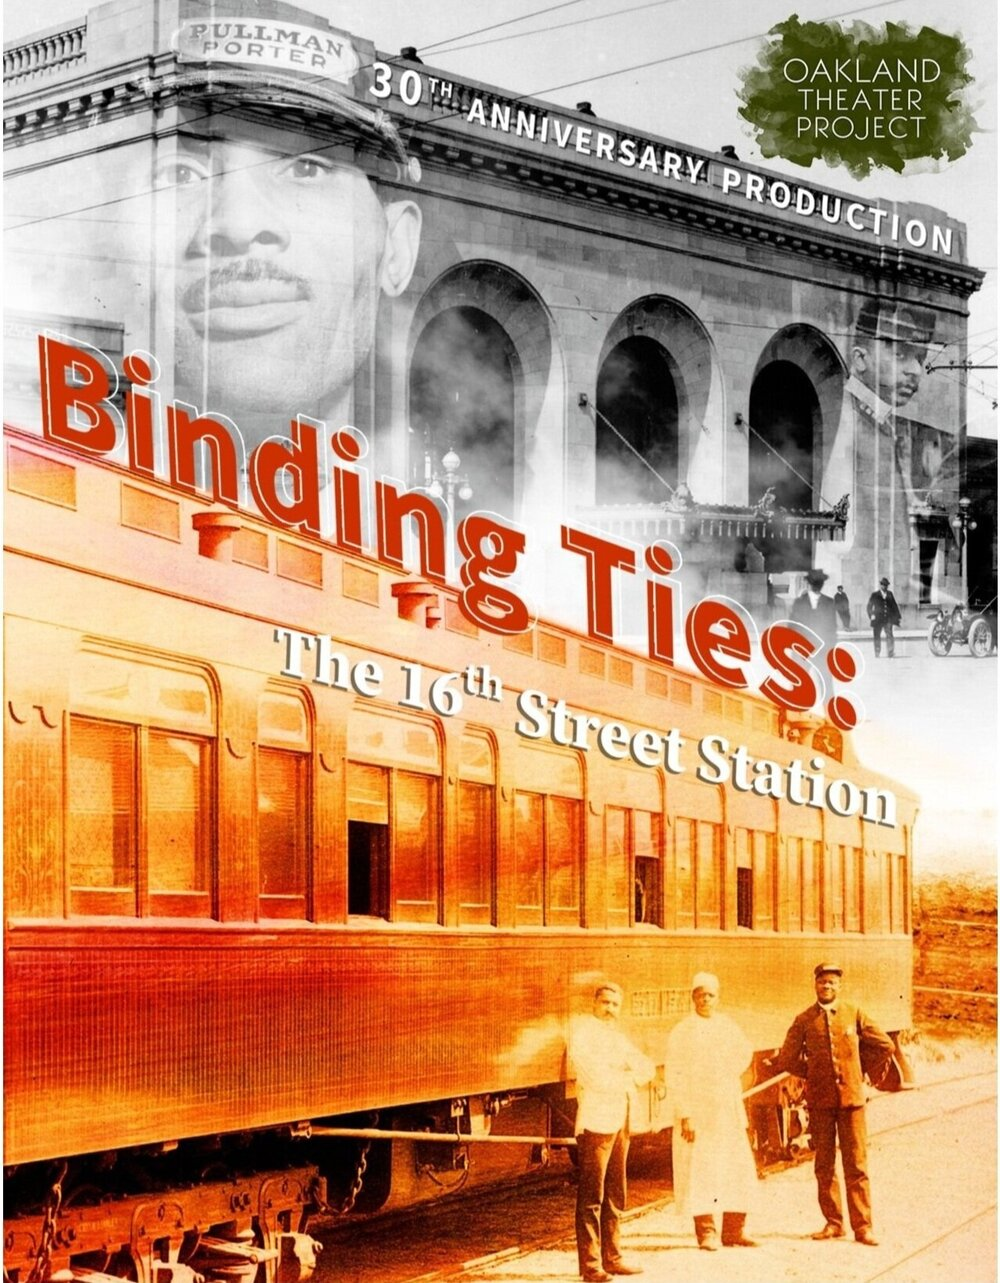 Binding-Ties-The-16th-Street-Station-Oakland-Theater-Project-30th-Anniversary-poster-0221, Wanda's Picks March 2021, Culture Currents